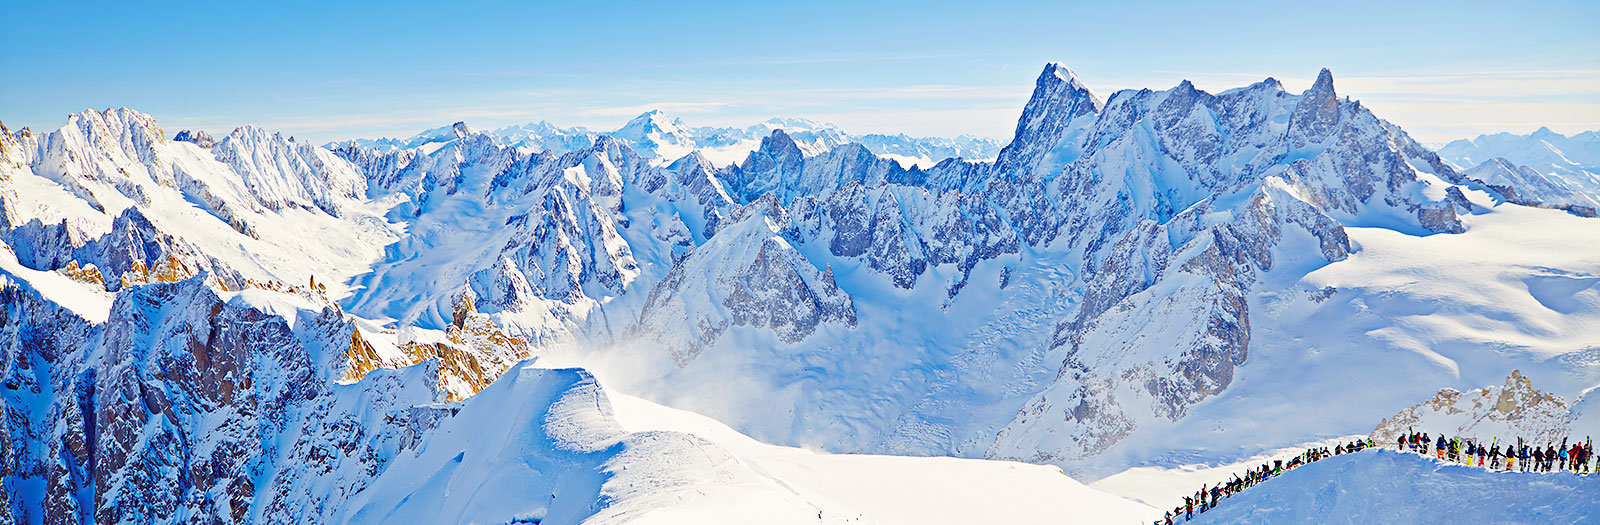 Chamonix ski and stay package deals